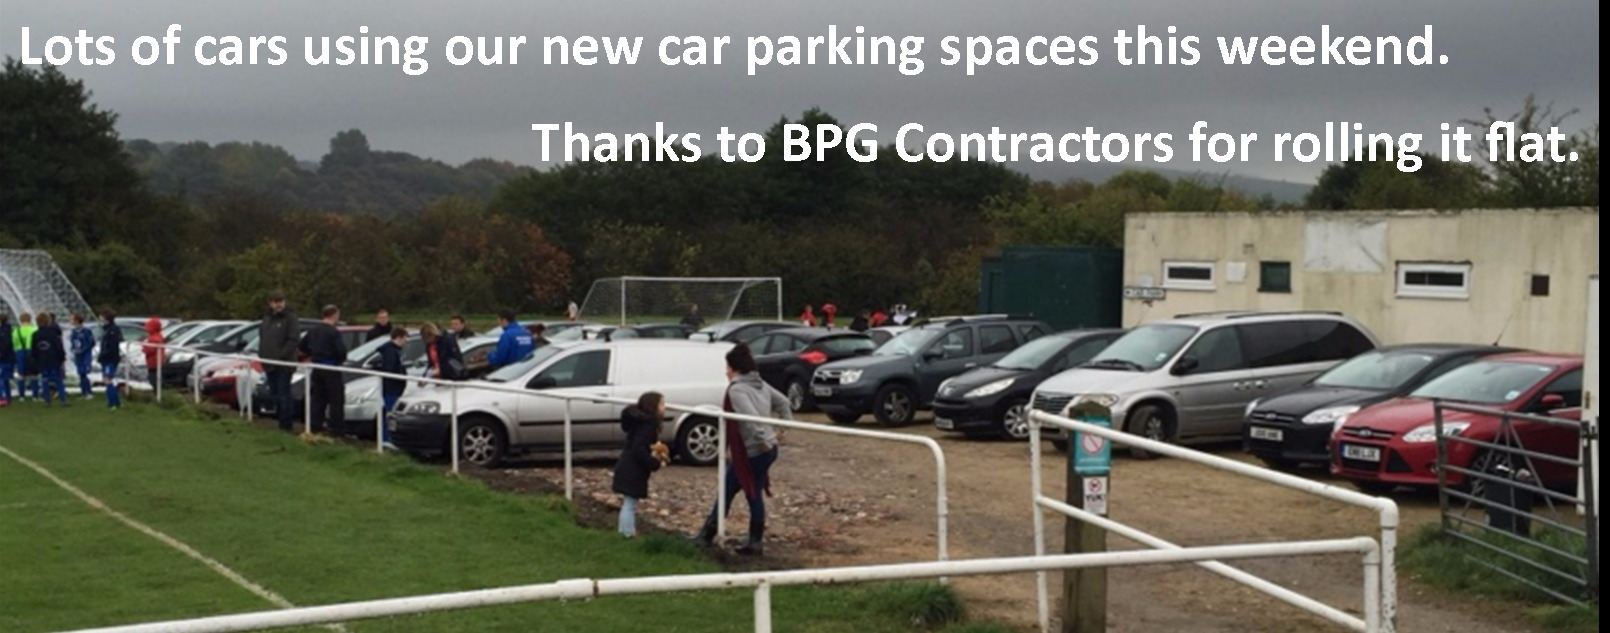 car park being used